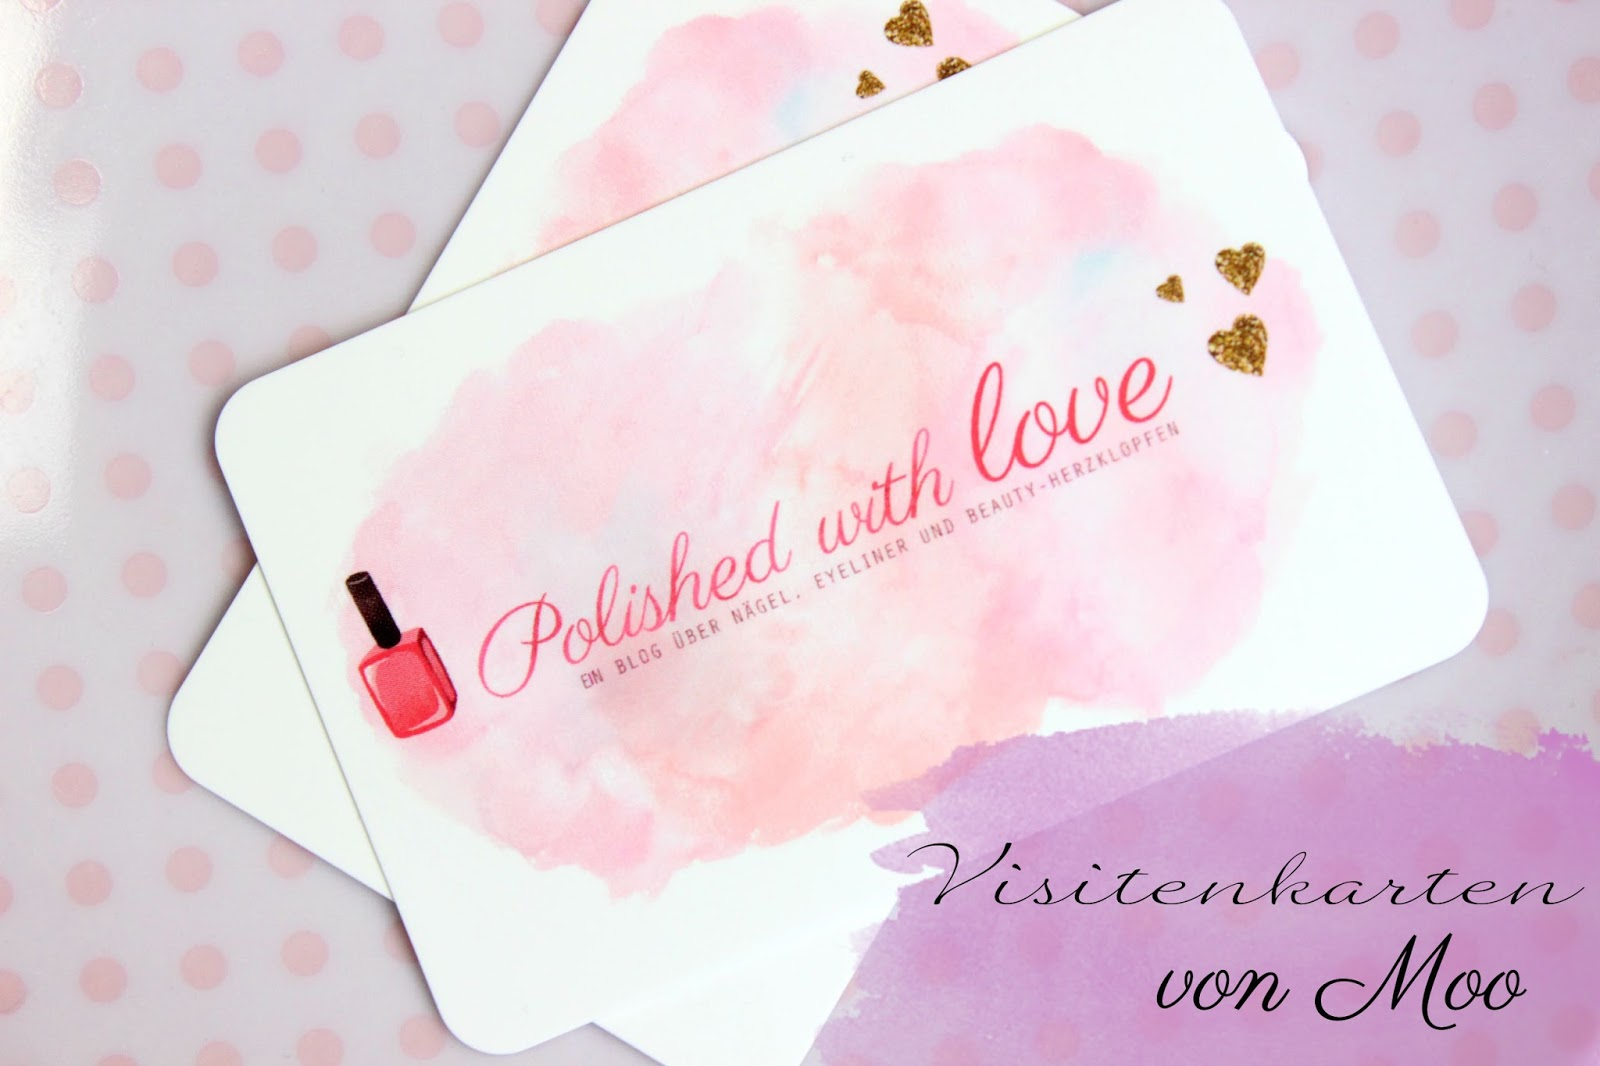 Polished With Love Review Gewinnspiel Blog